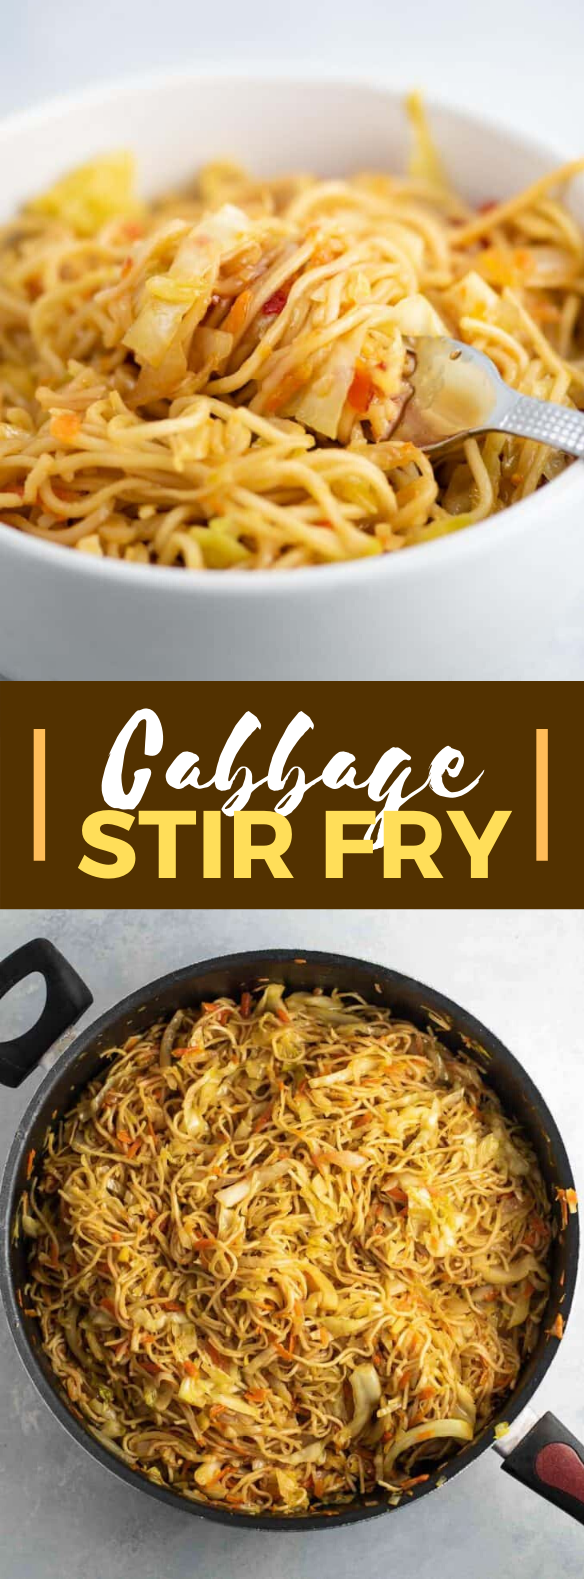 CABBAGE STIR FRY #vegetarian #veggies